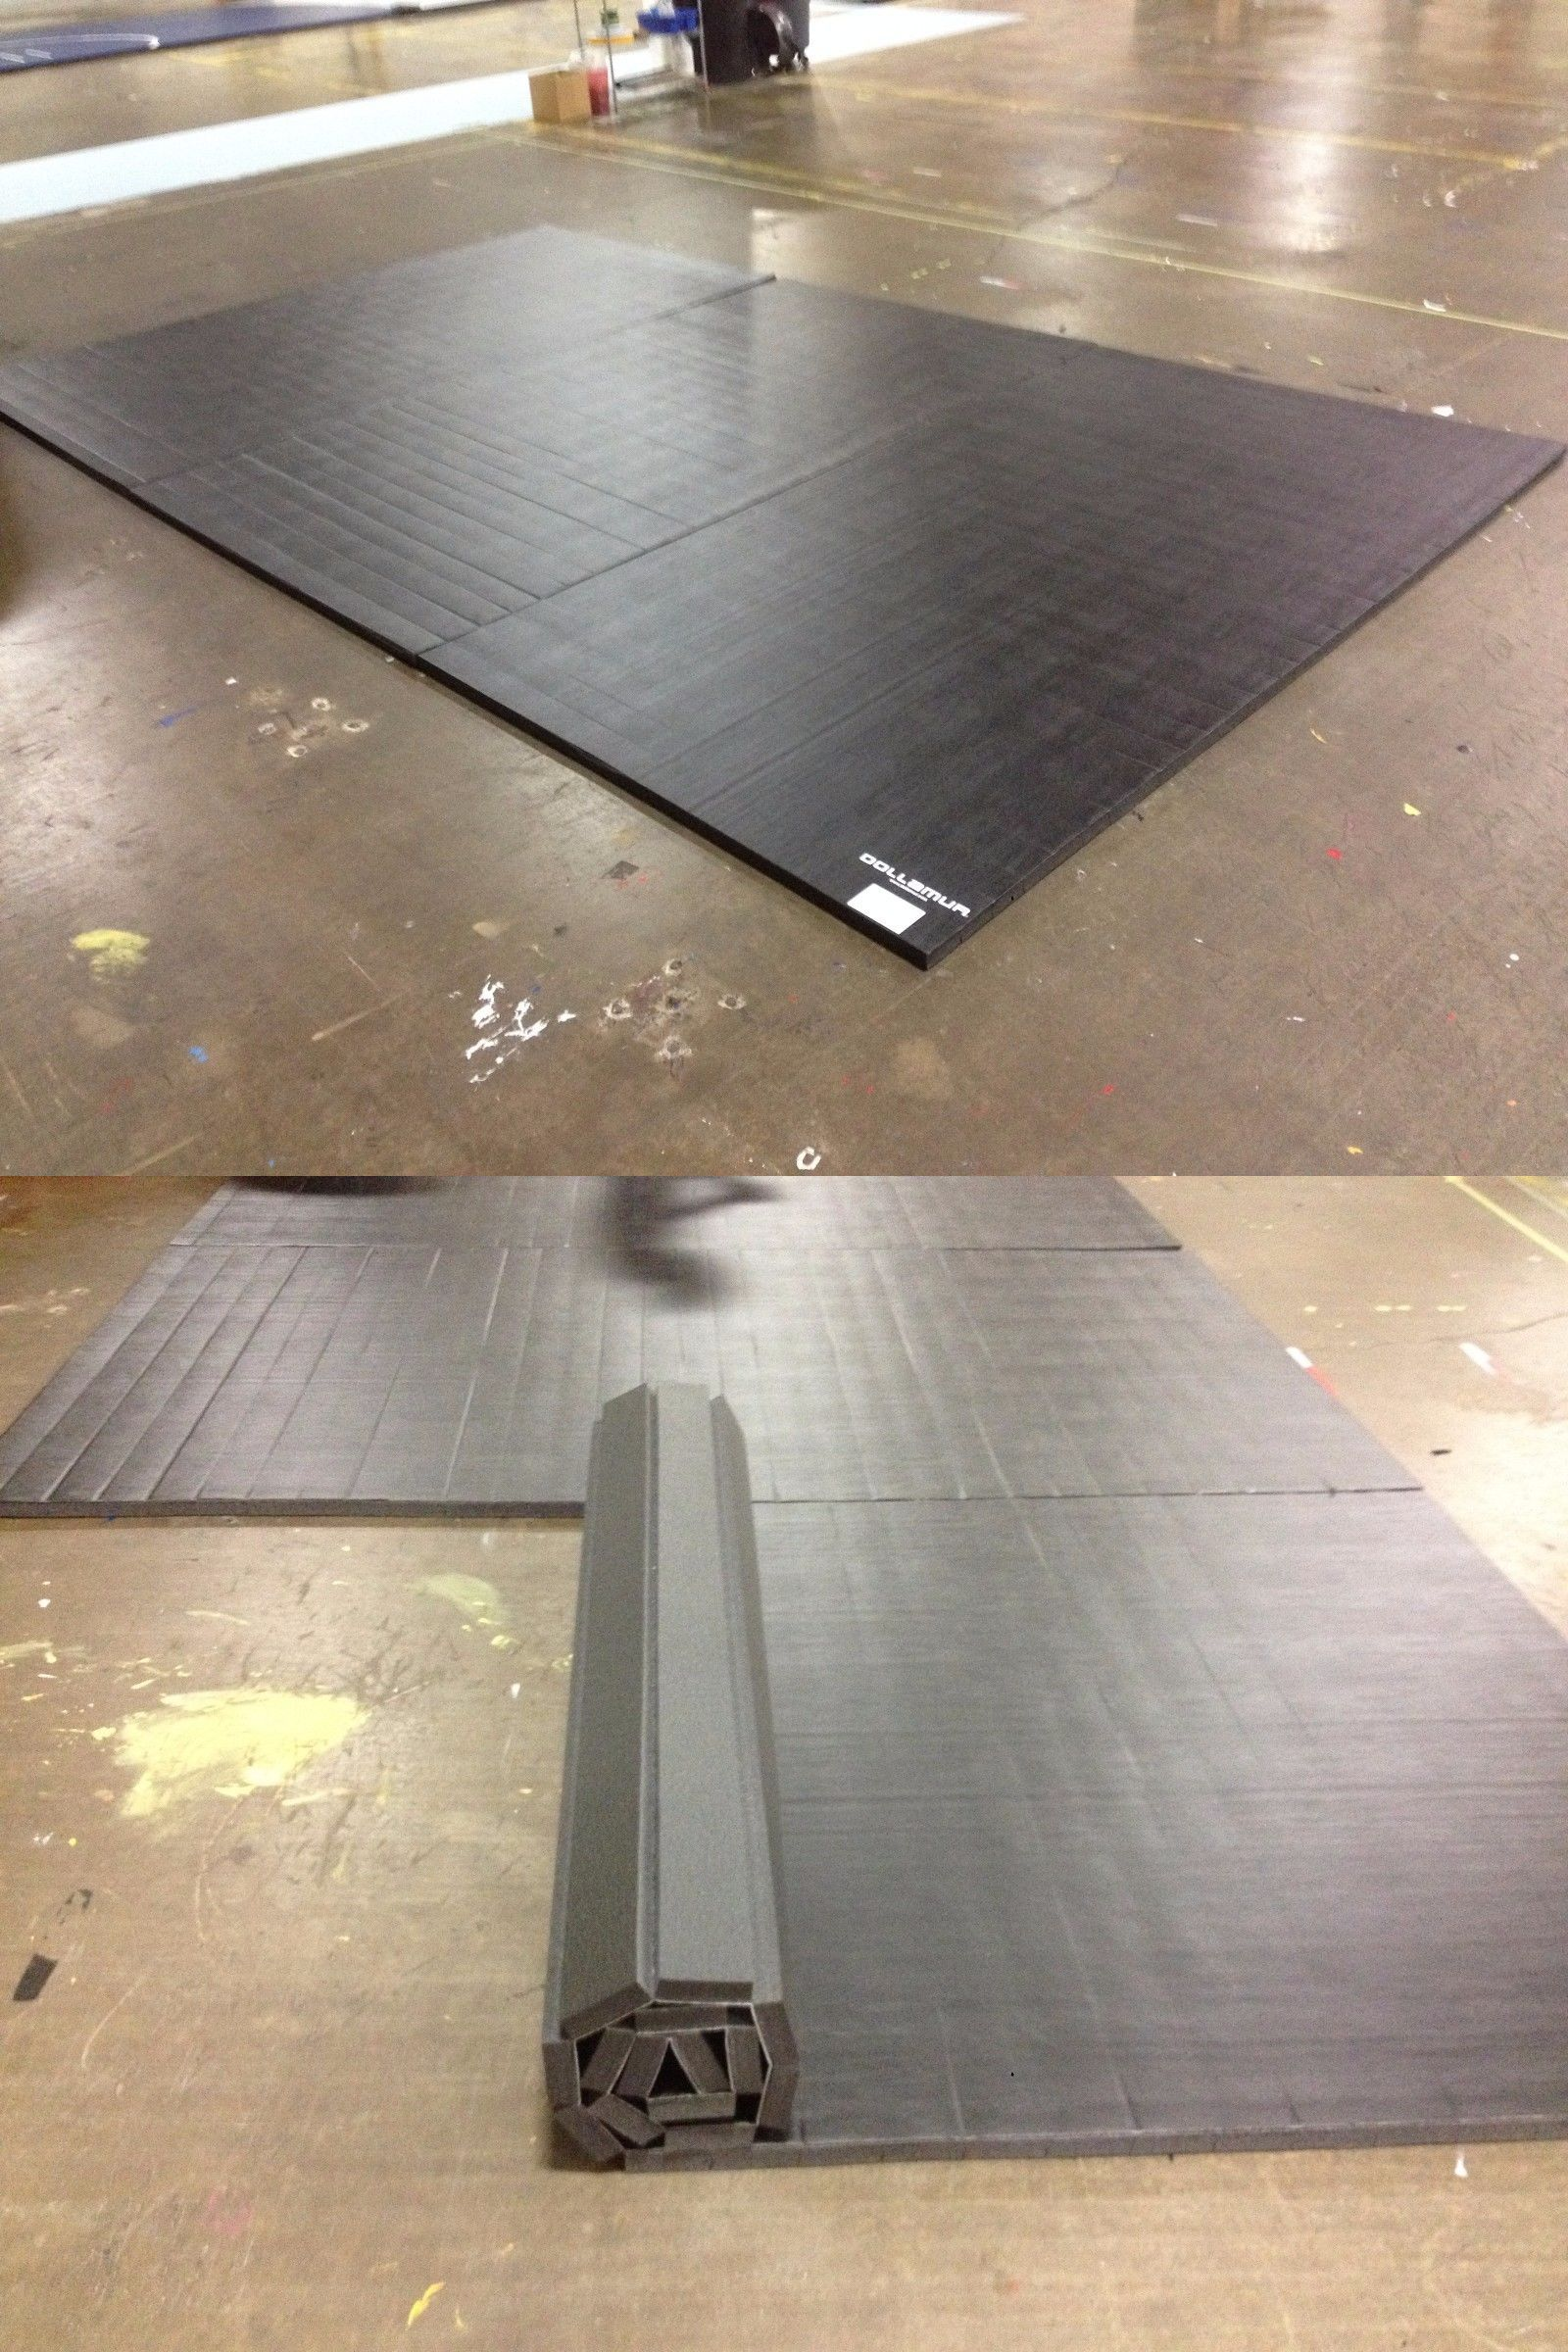 mat on europe install double to mills accessories lift safe tape mats installation sided the truck mountville instructions how products anchor